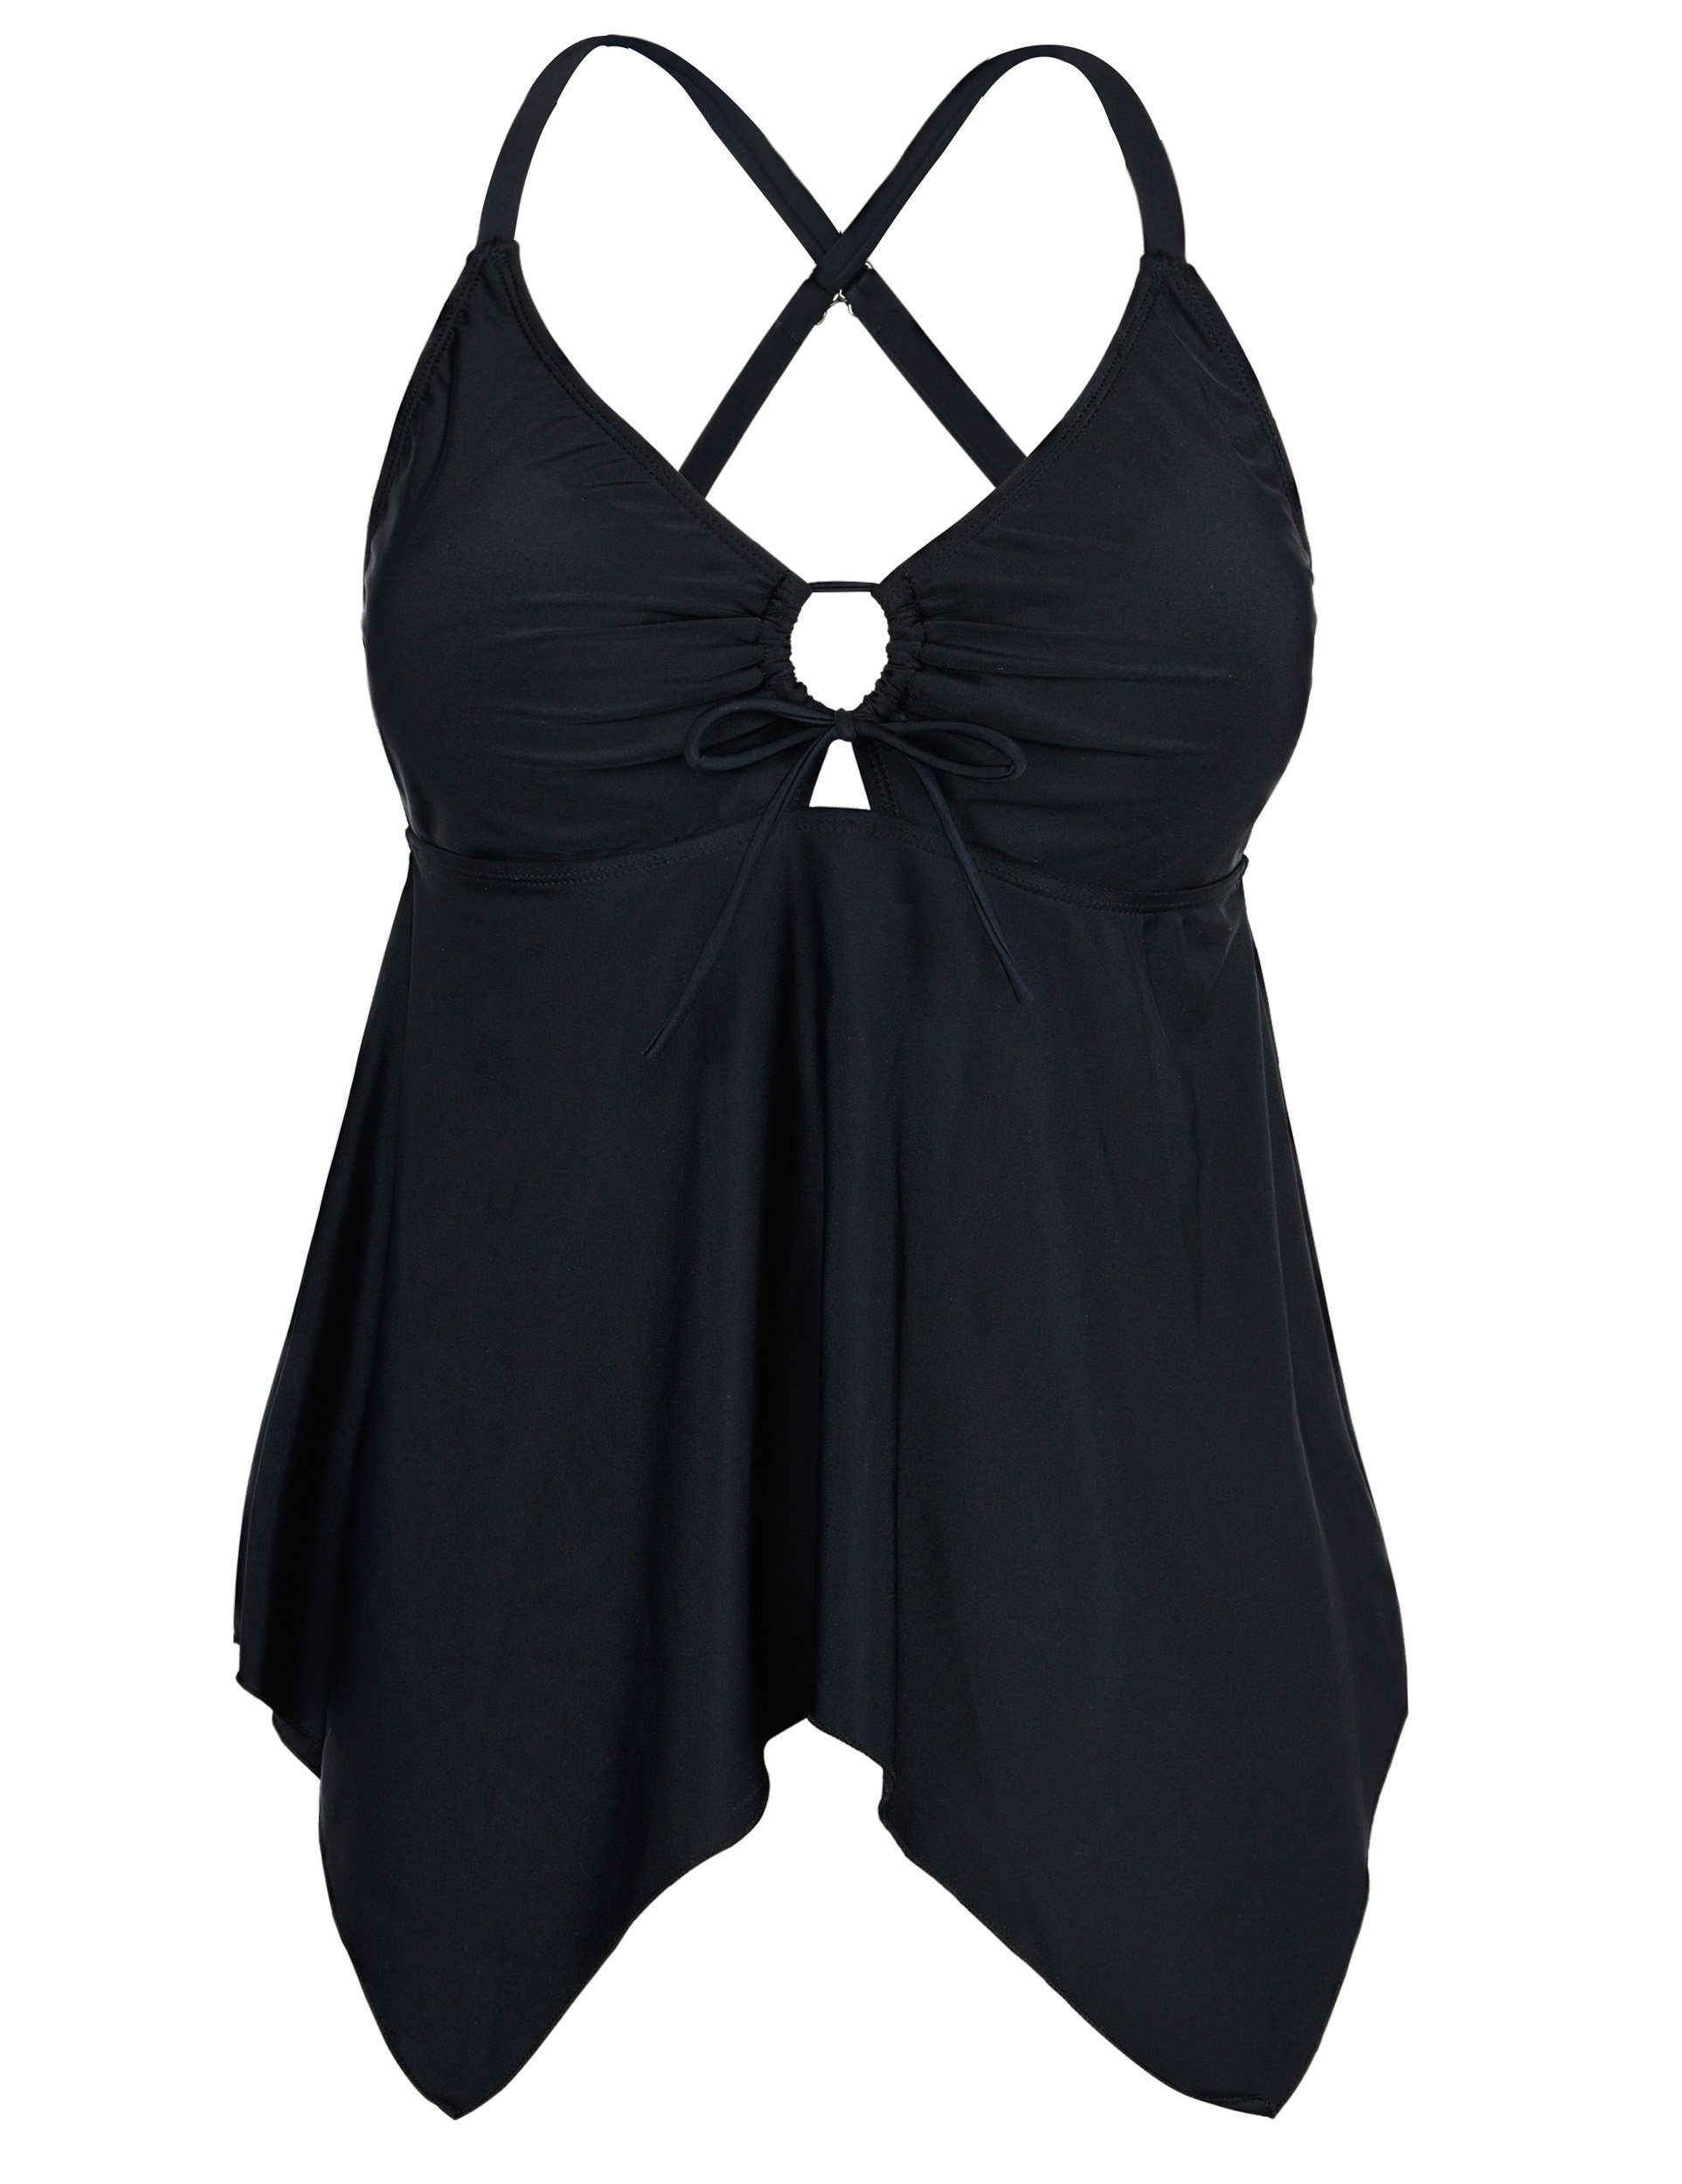 78e0766166 Firpearl Women s Black Flowy Swimsuit Crossback Plus Size Tankini Top  product image